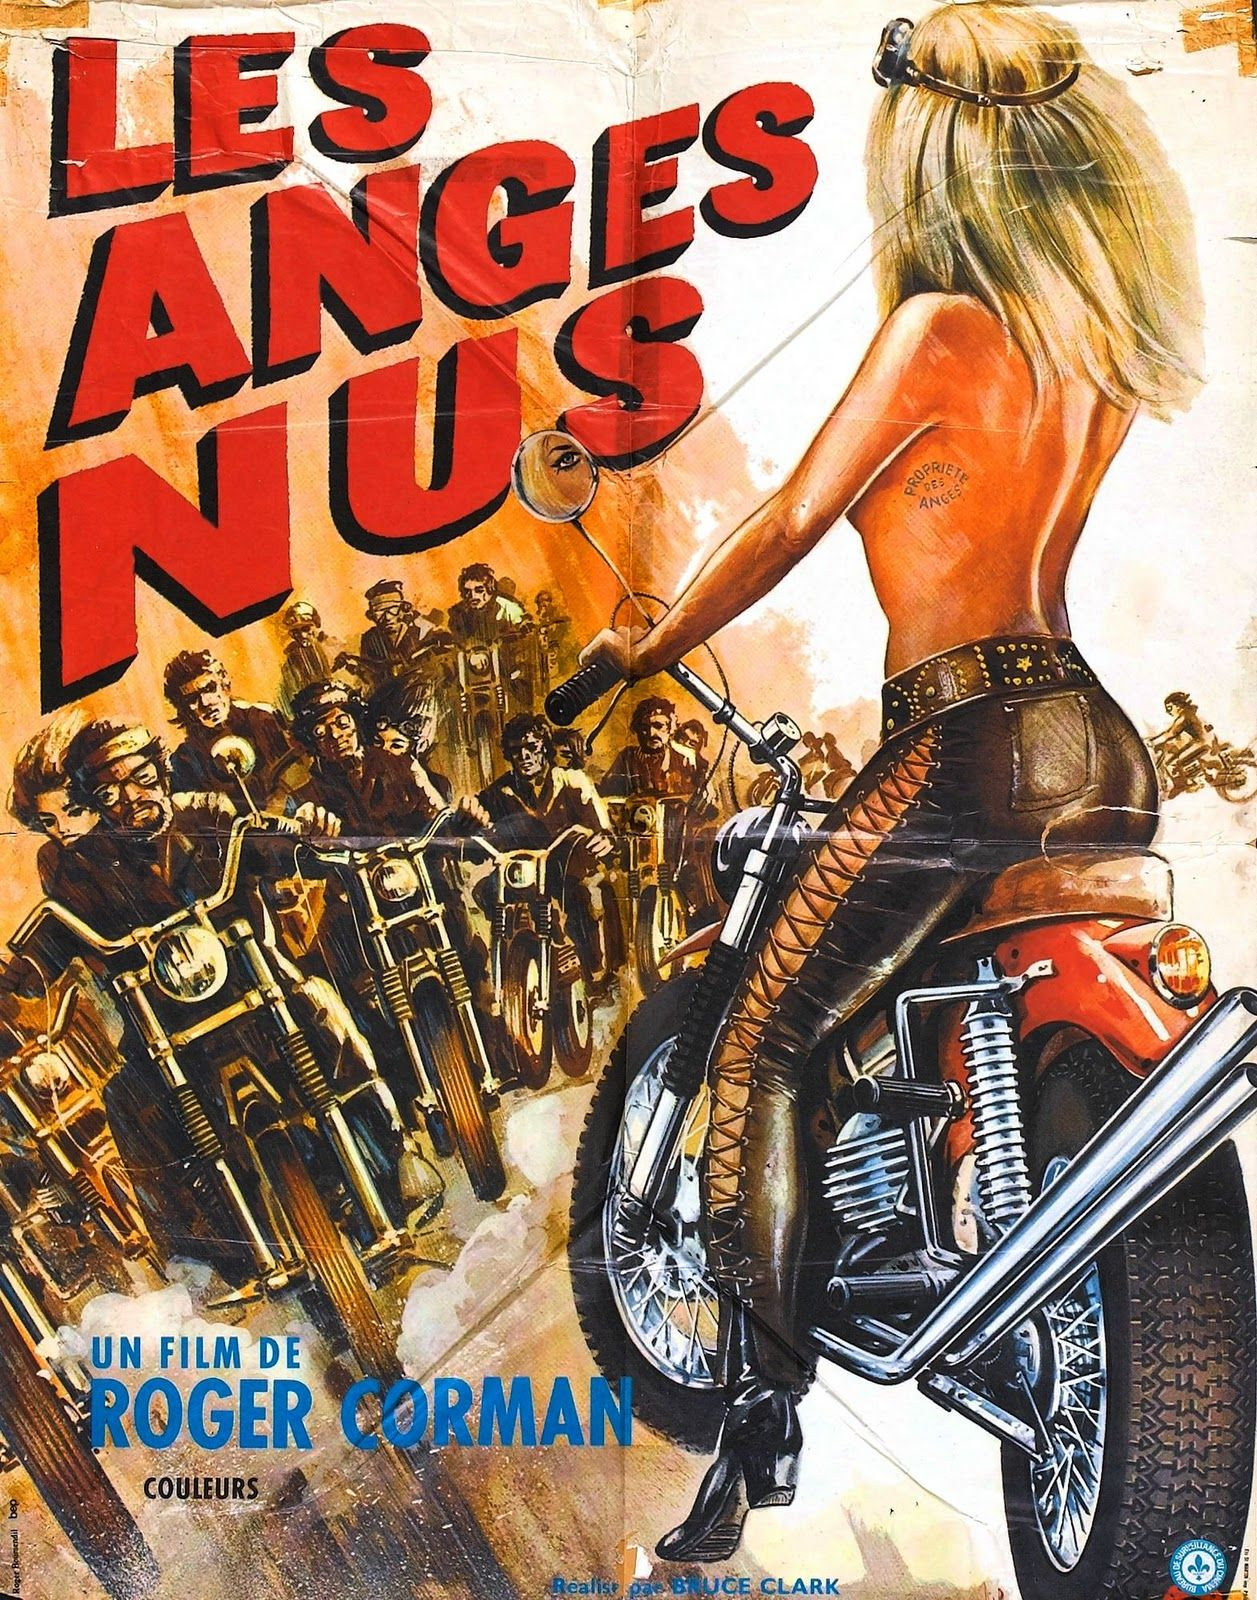 MOTORCYCLE 74: Biker movie poster - Naked Angels - Roger Corman